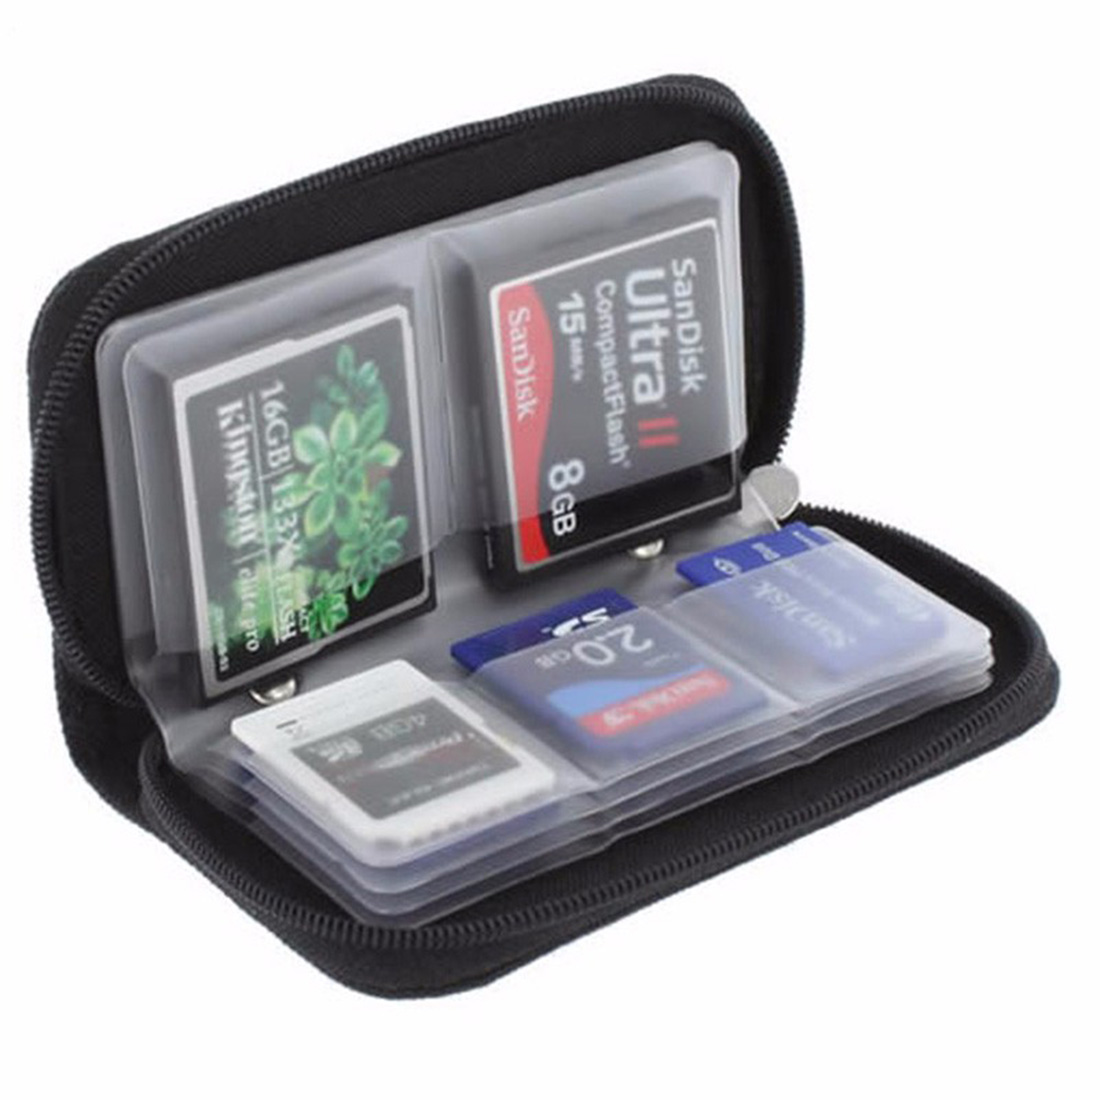 NOYOKERE 1pcs High Quality Memory Card Storage Carrying Case Holder Wallet For CF/SD/SDHC/MS/DS Container-in Memory Card Cases from Computer & Office